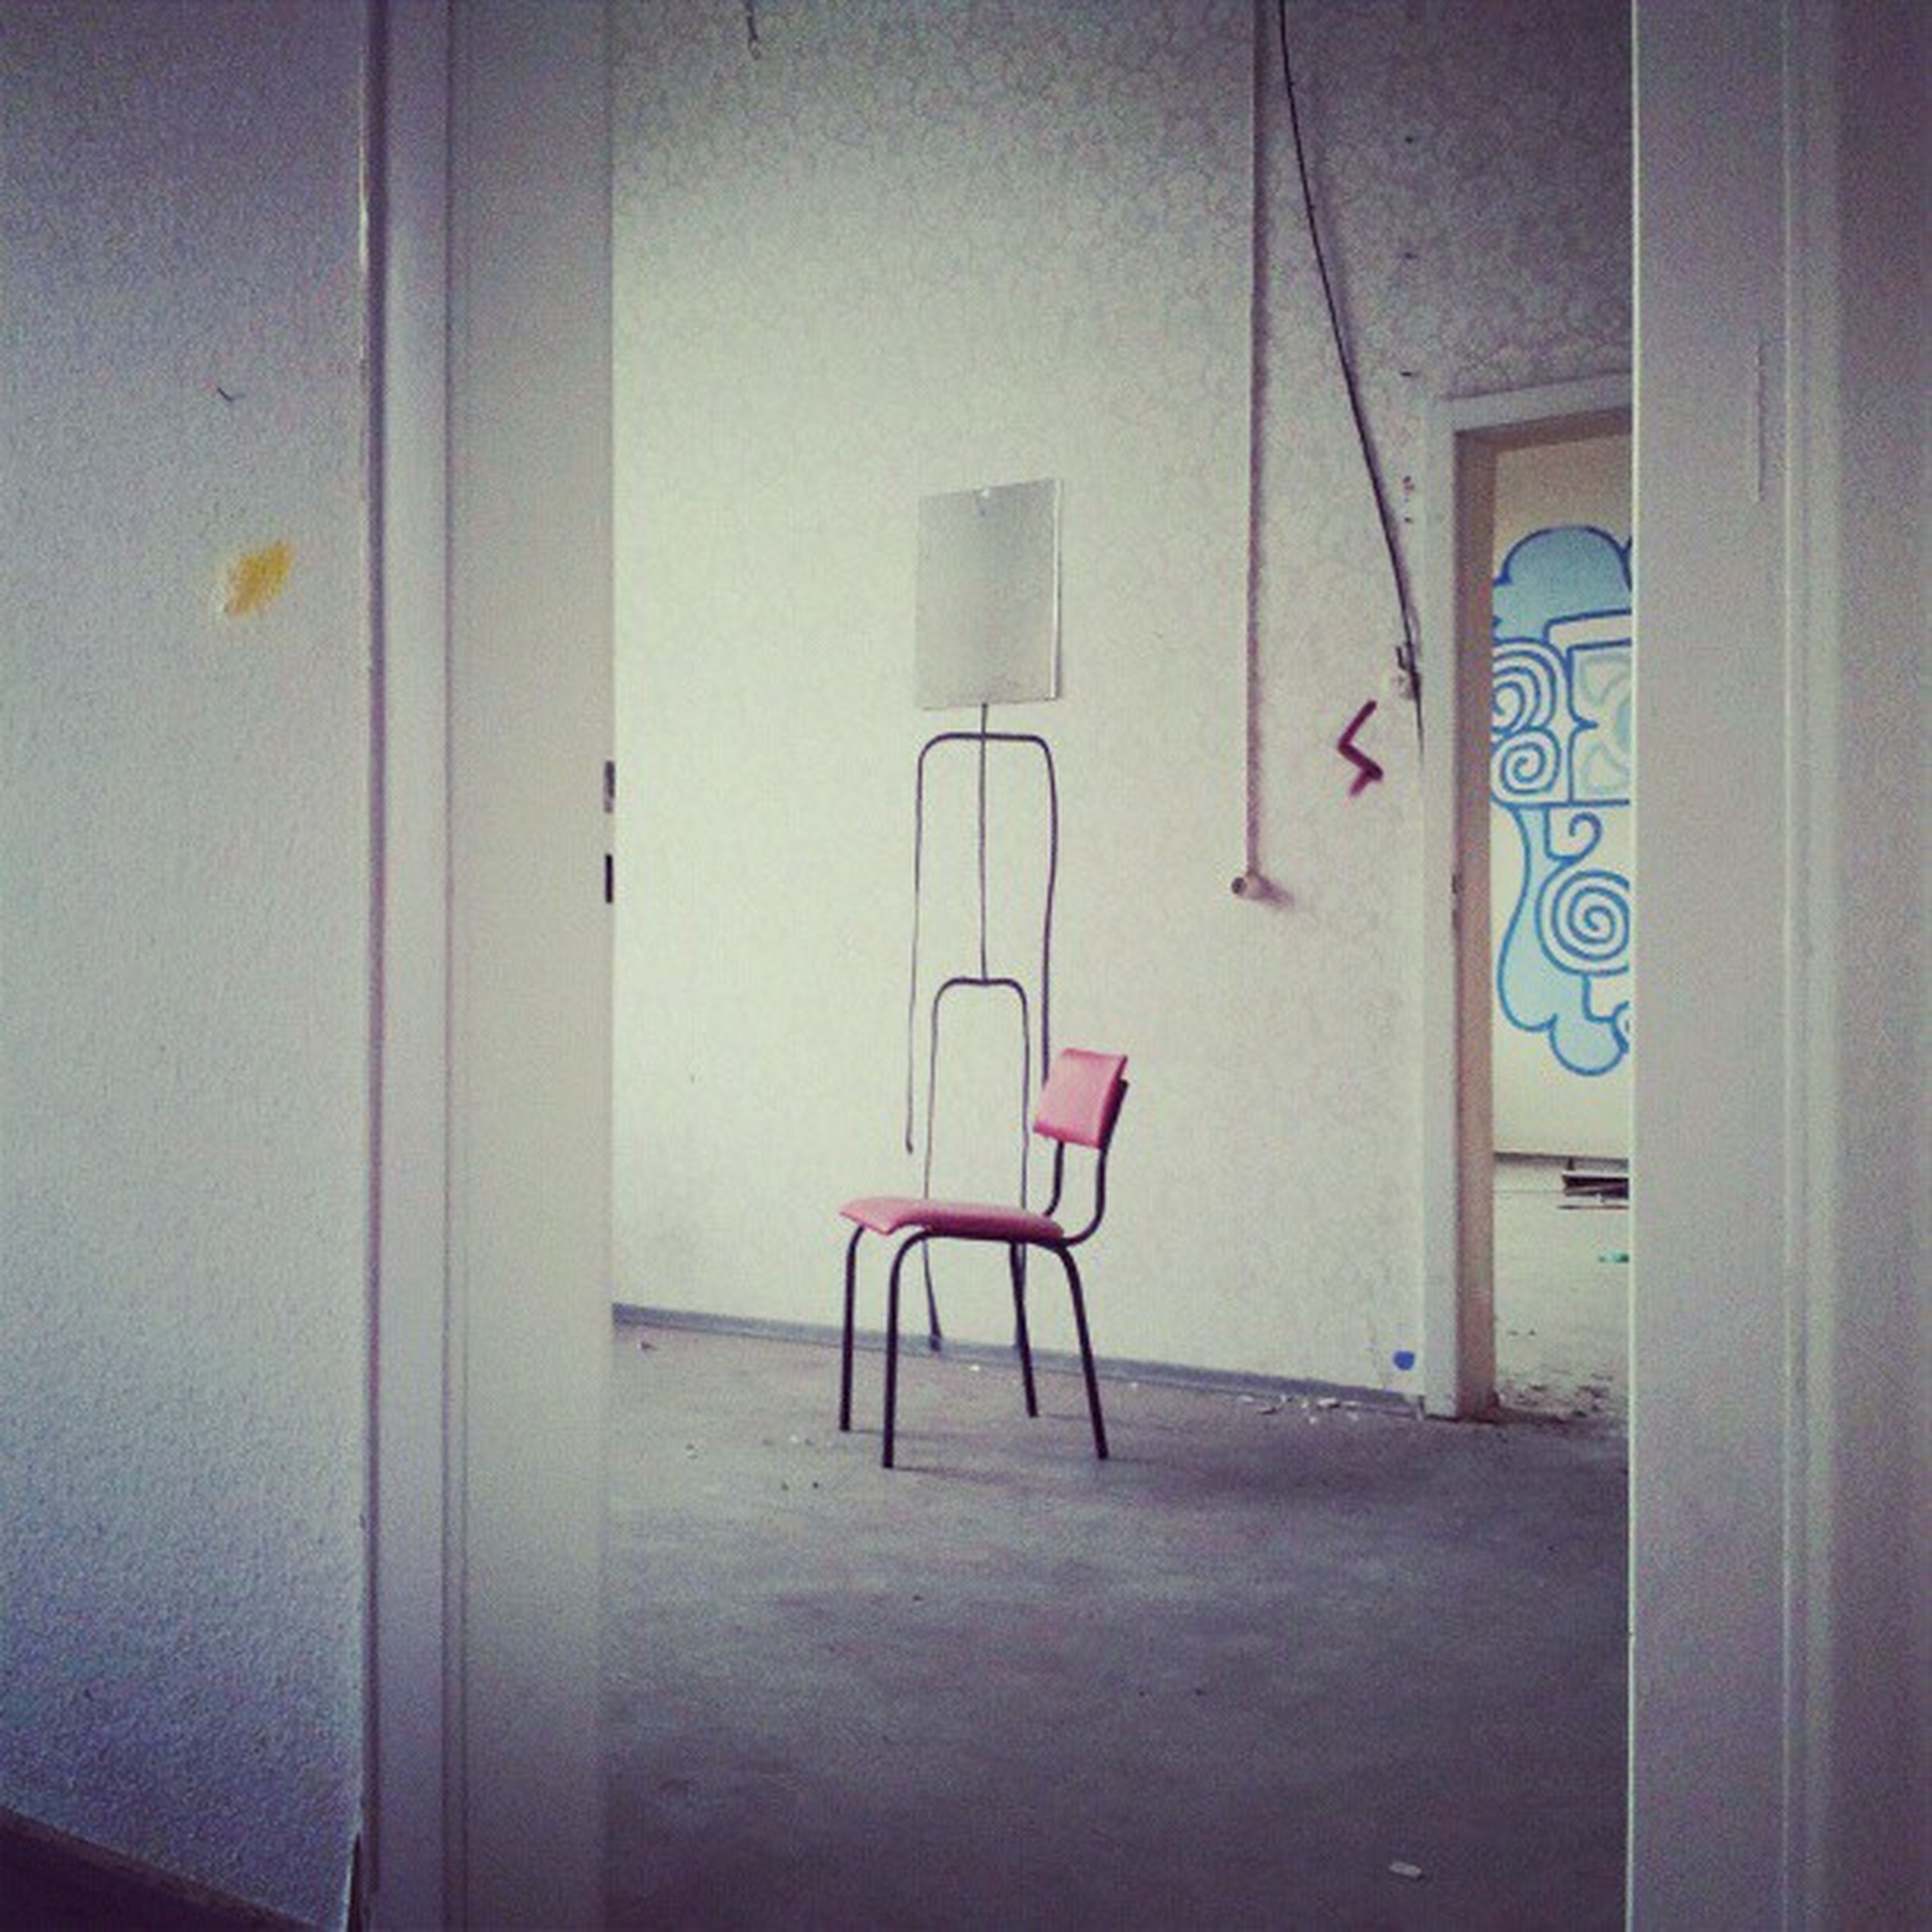 indoors, door, wall - building feature, communication, architecture, built structure, text, wall, empty, closed, no people, absence, western script, house, red, day, window, chair, metal, home interior